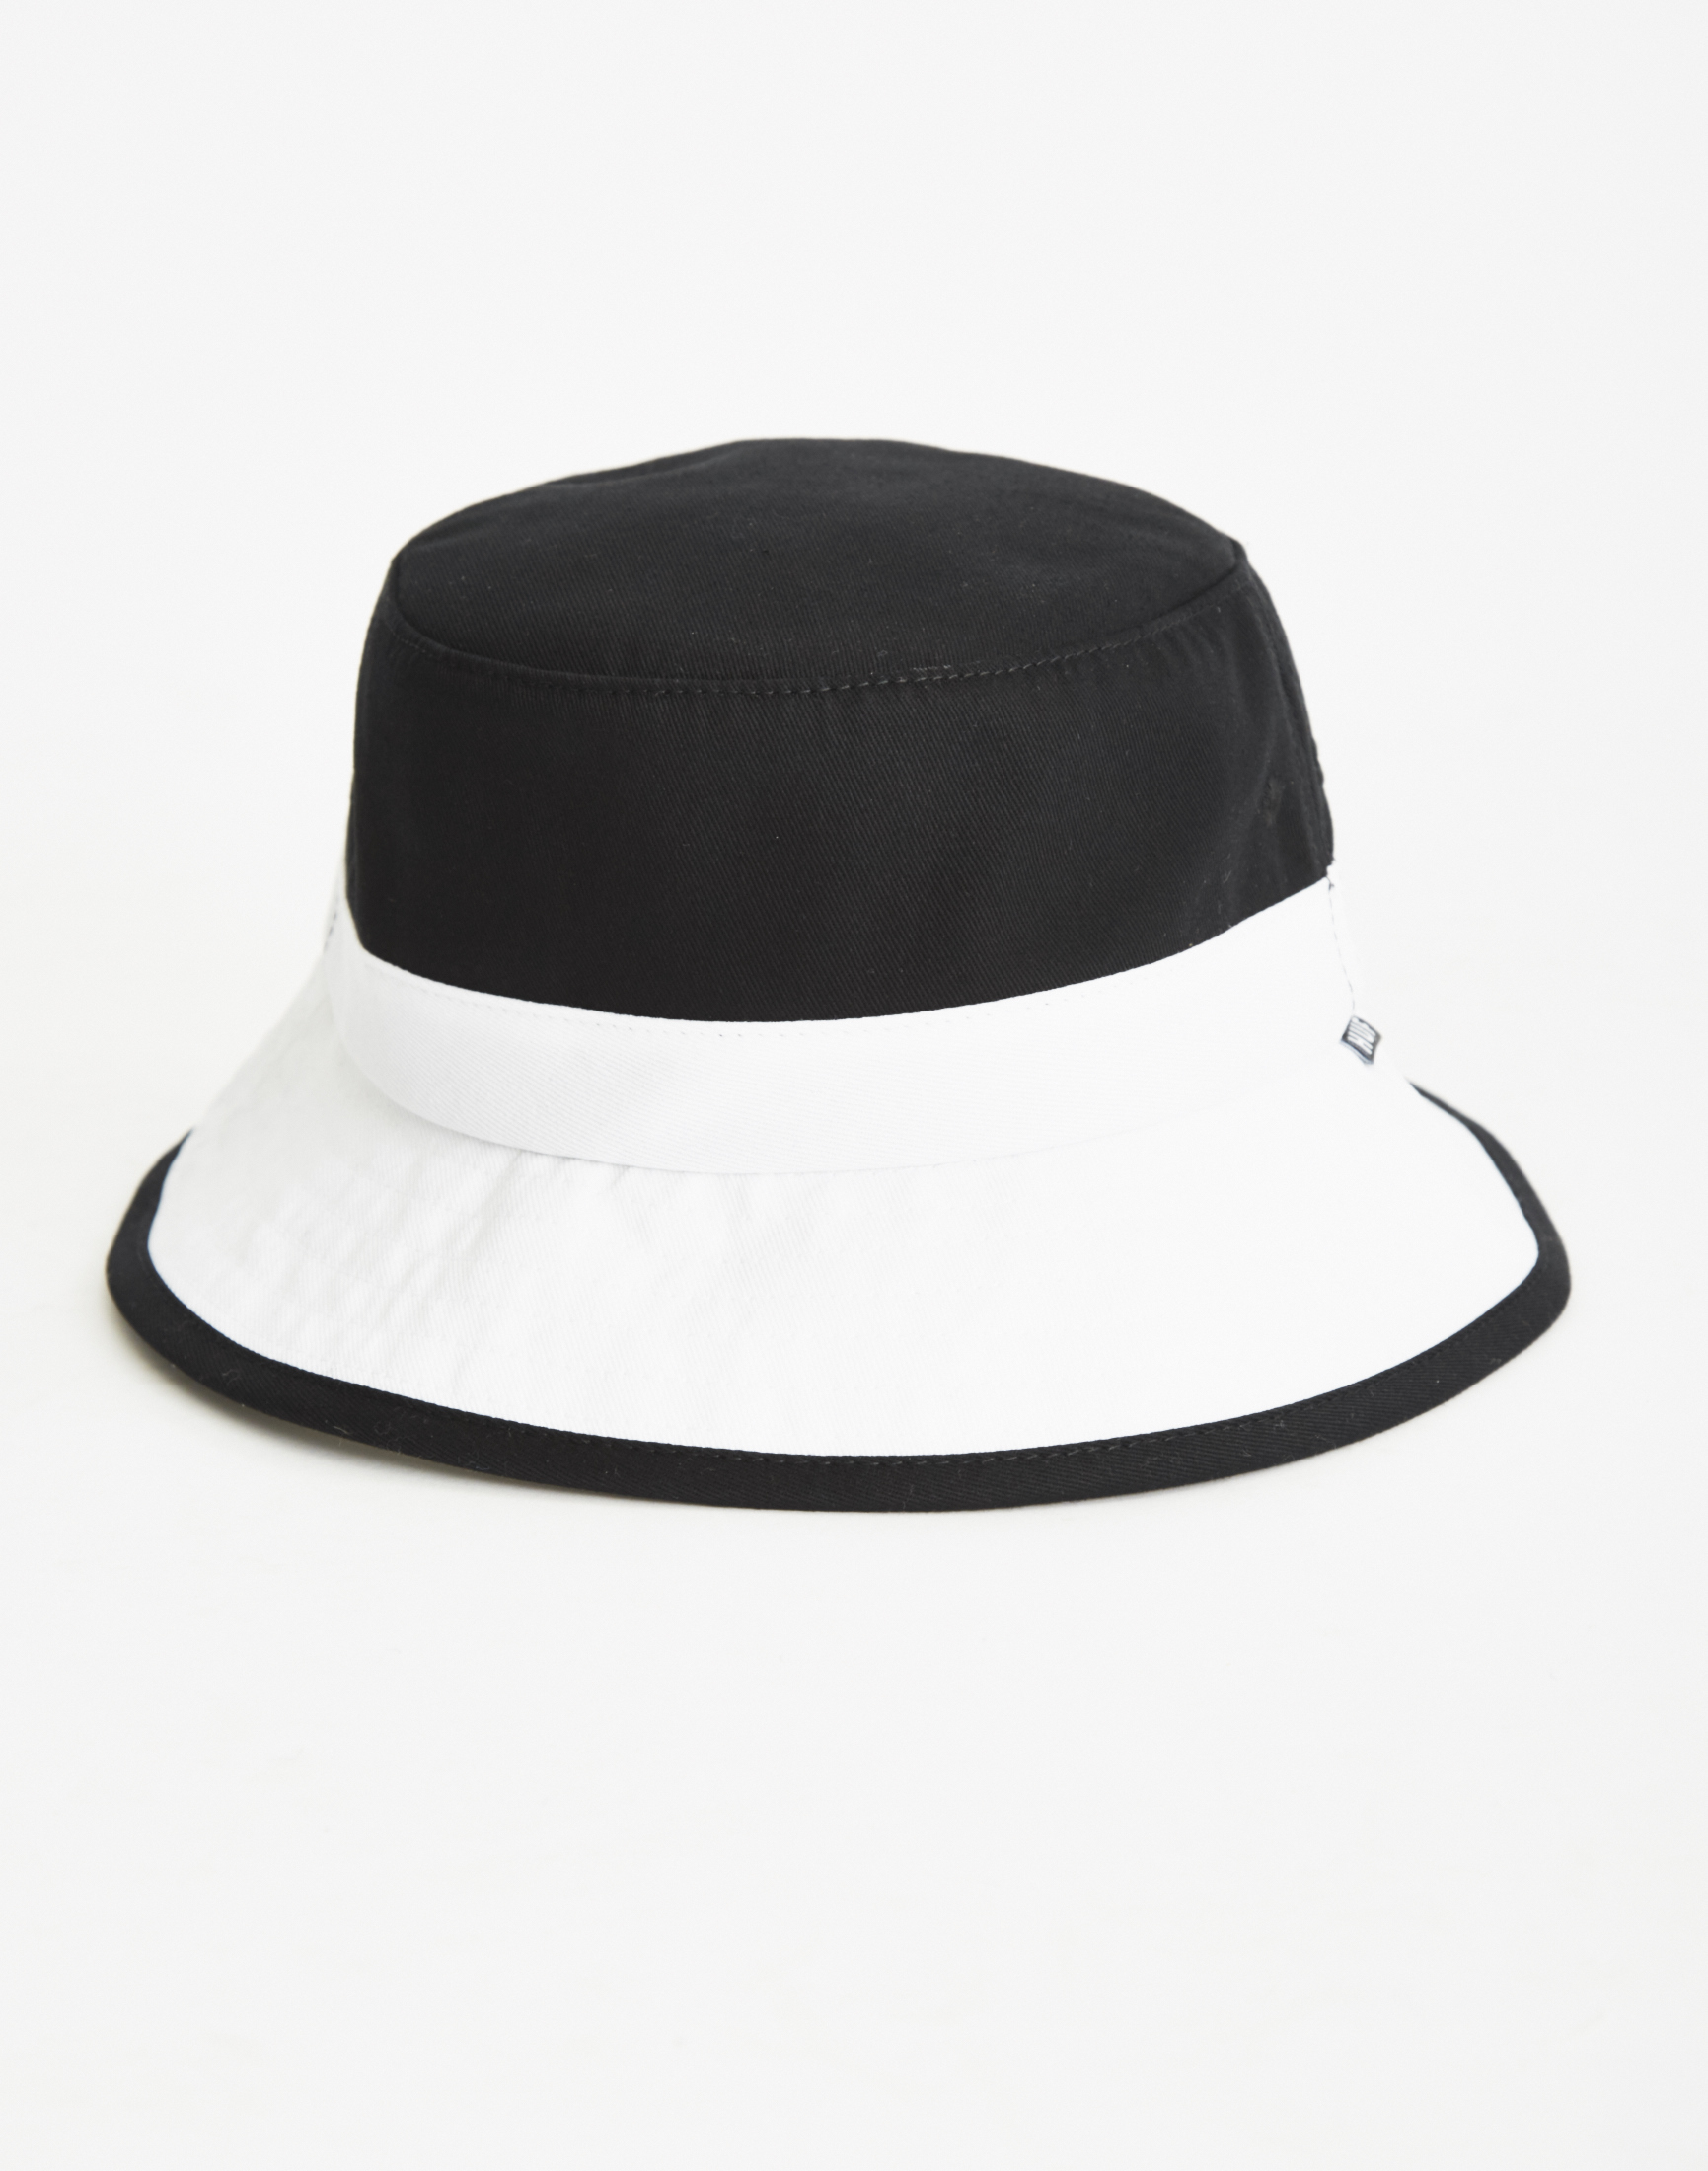 a6a5bf5b5ae Huf Colourblock Bucket Hat Black white for Men - Lyst